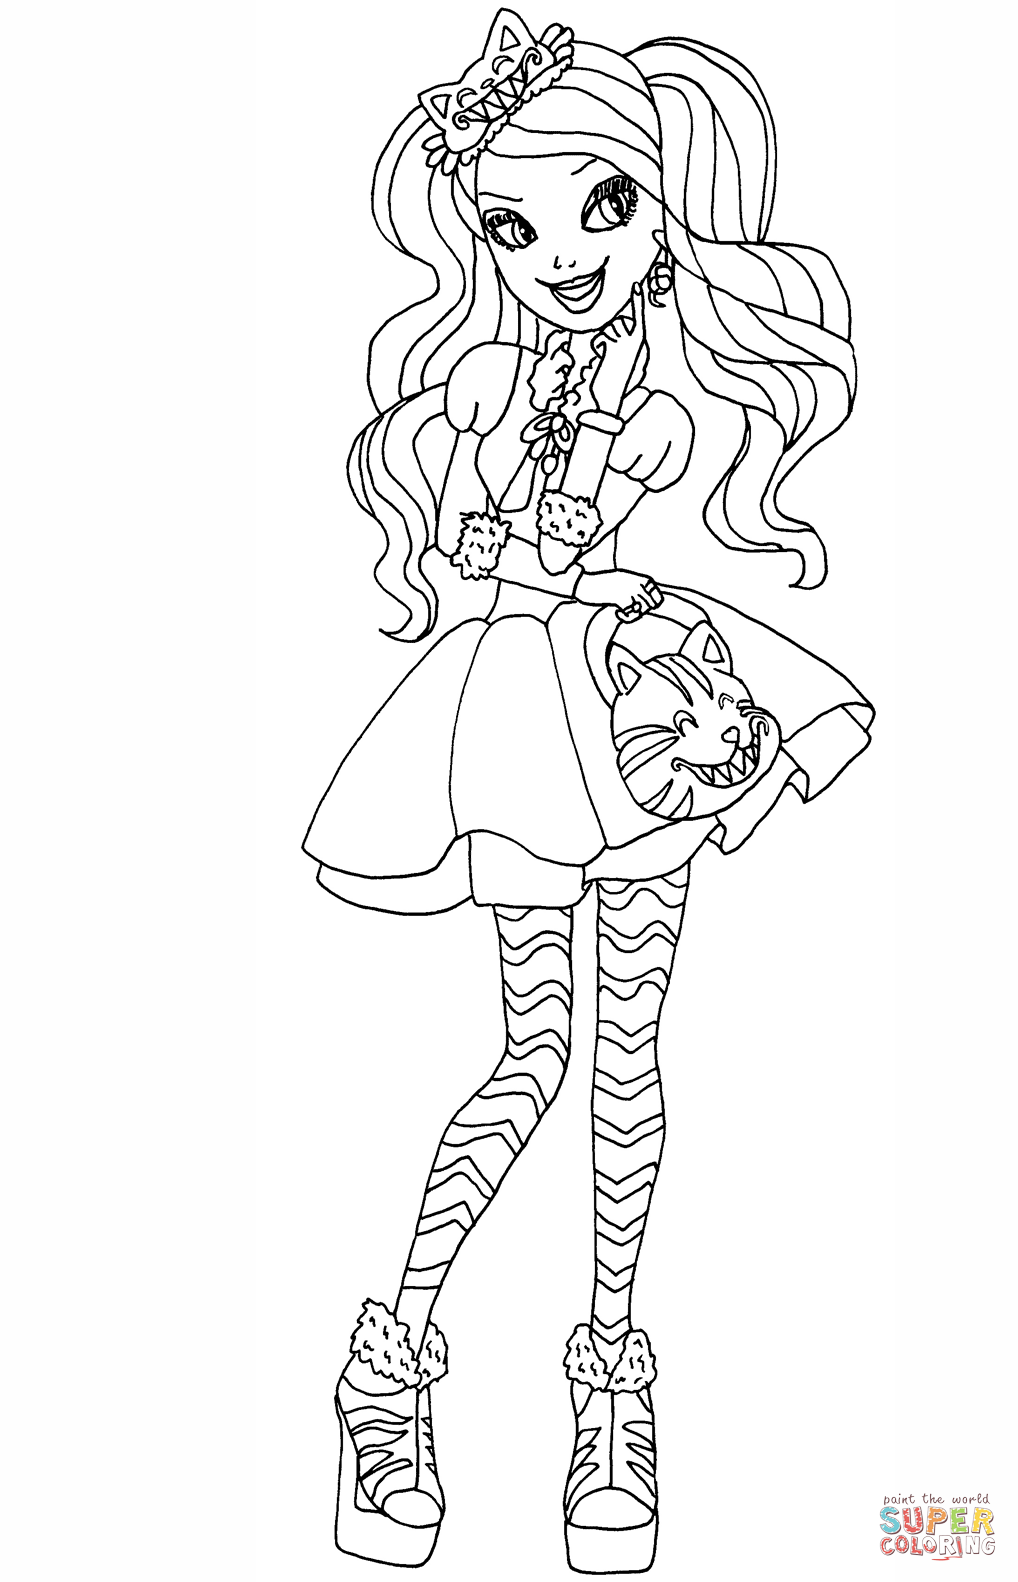 Ausmalbilder Monster High Kostenlos : Resultado De Imagem Para Ever After High Ginger Para Colorir Todas